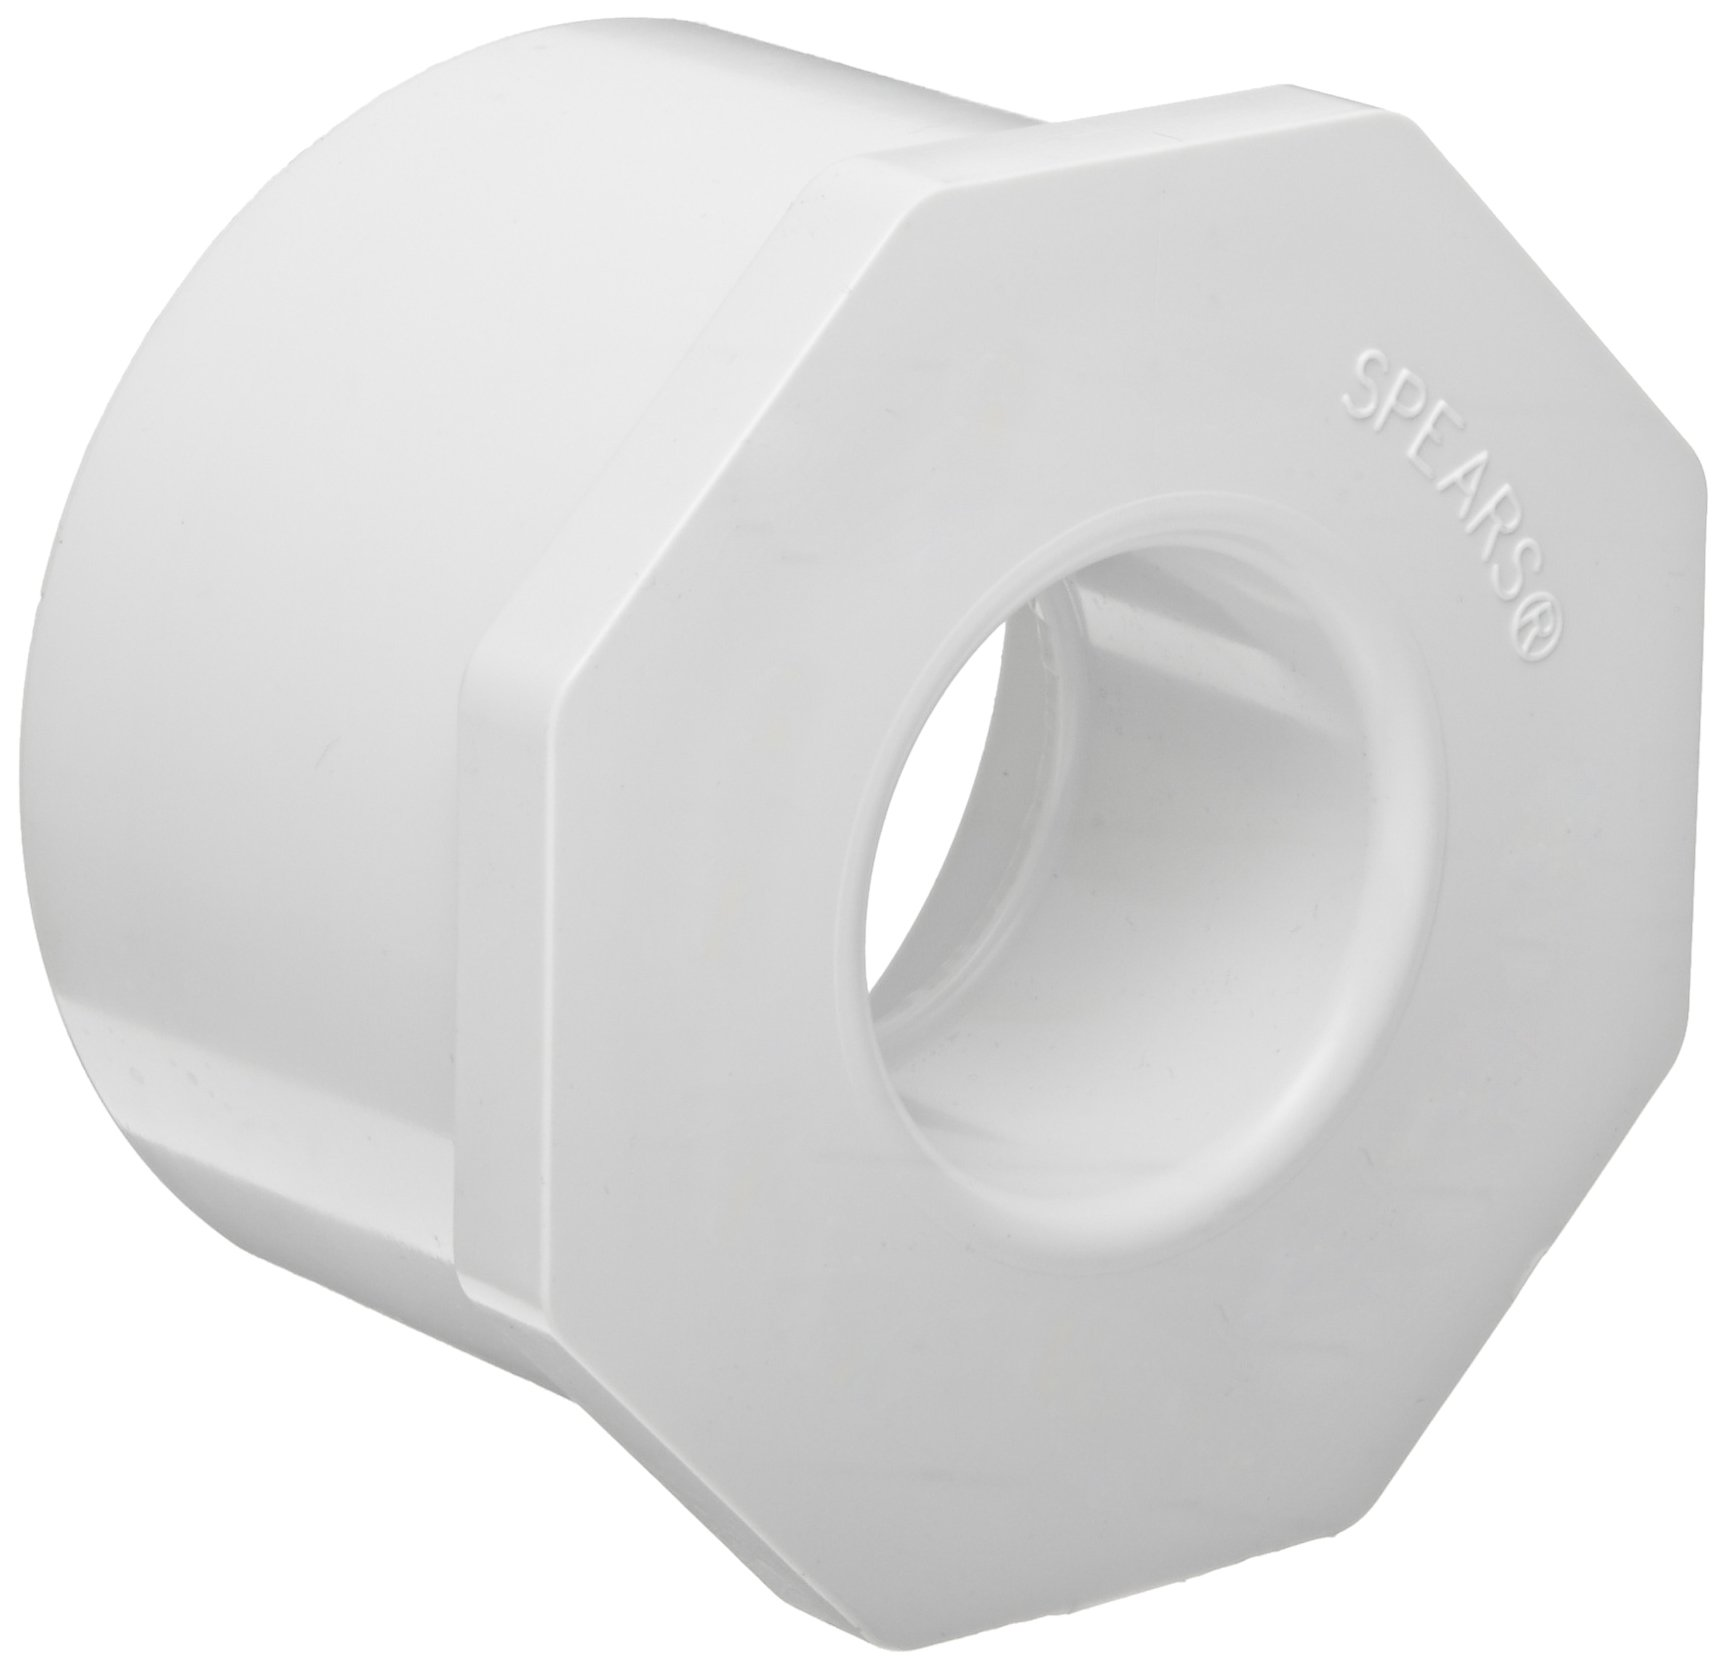 """Spears 437-211 PVC Pipe Fitting, Bushing, Schedule 40, White, 1-1/2"""" Spigot x 1"""" Socket (Pack of 10)"""